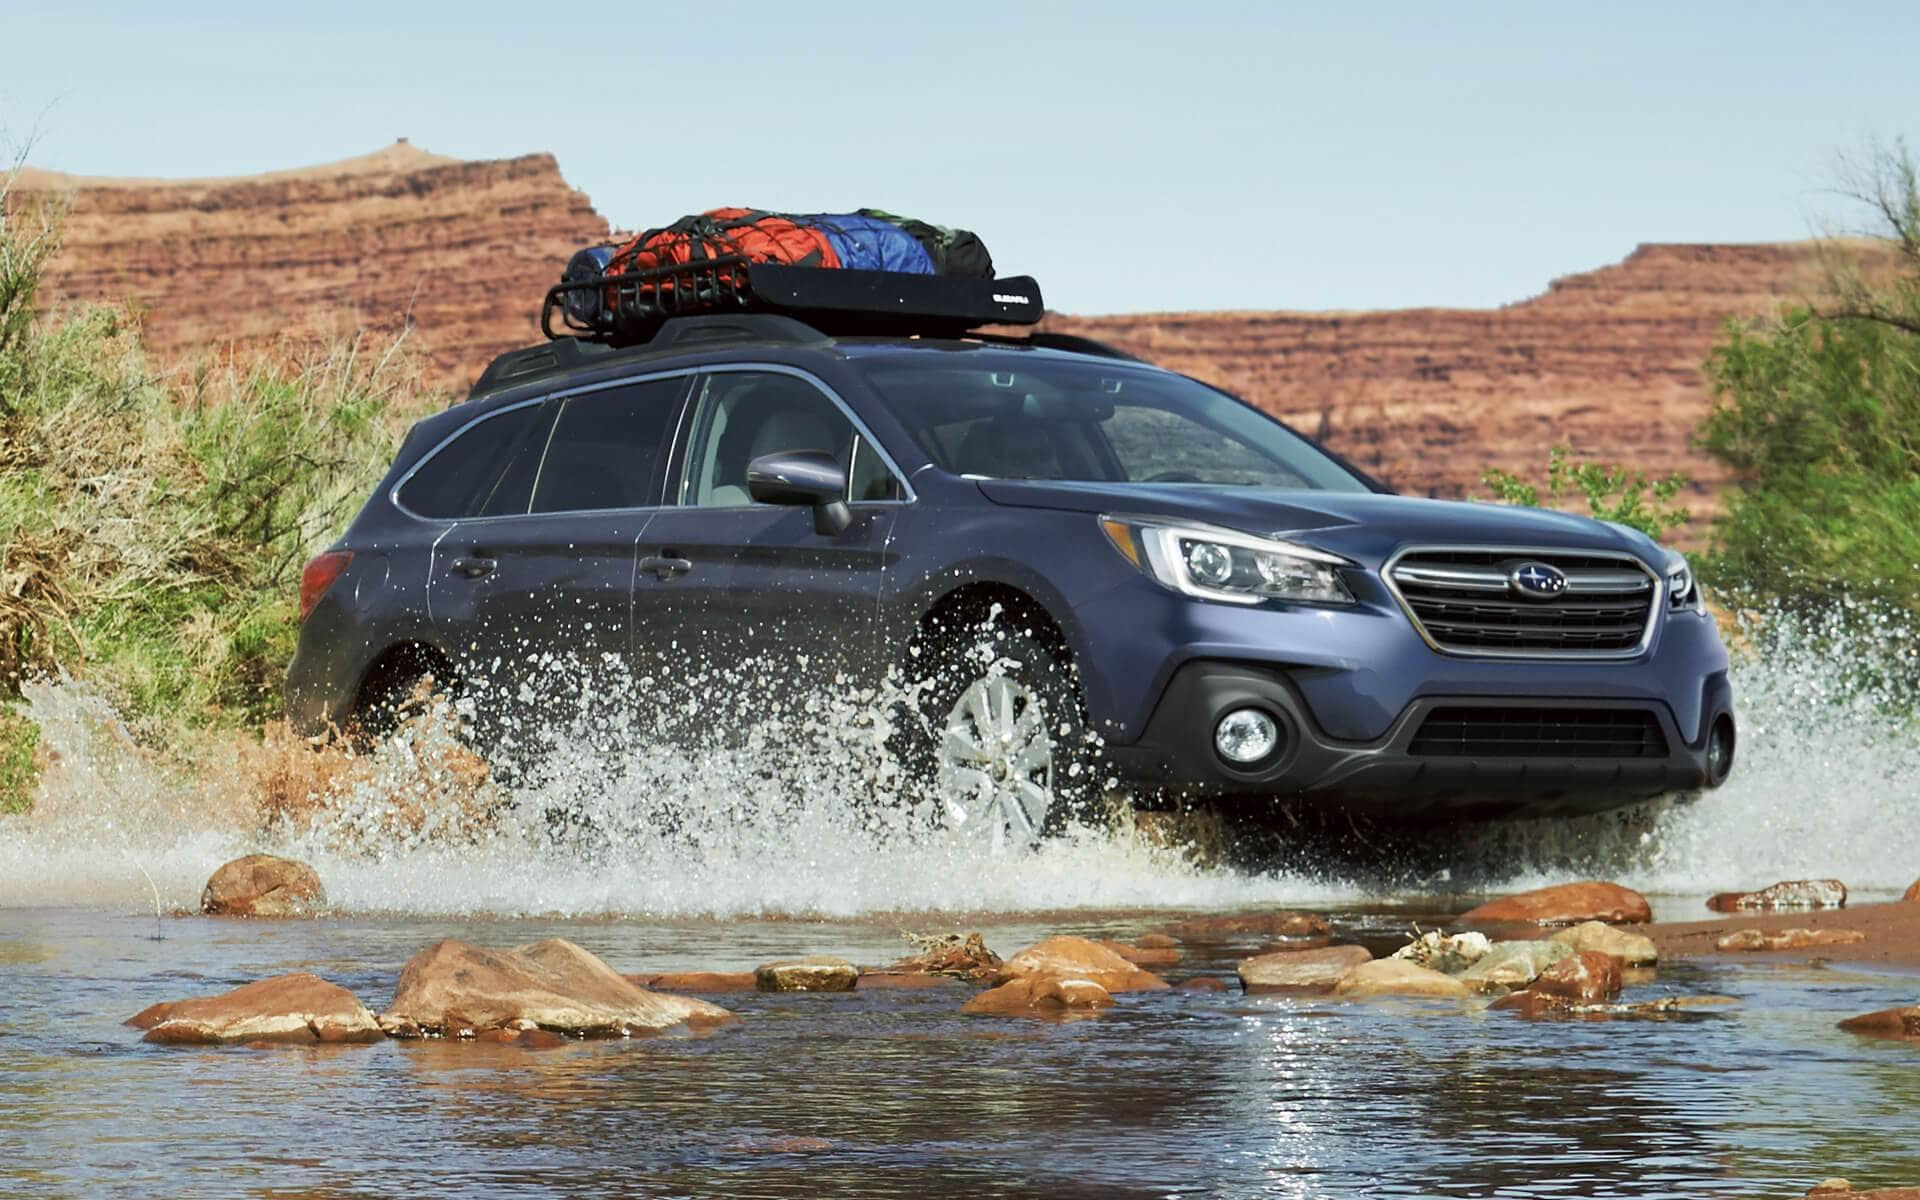 2018 Suburu Outback Front Exterior Off-Road